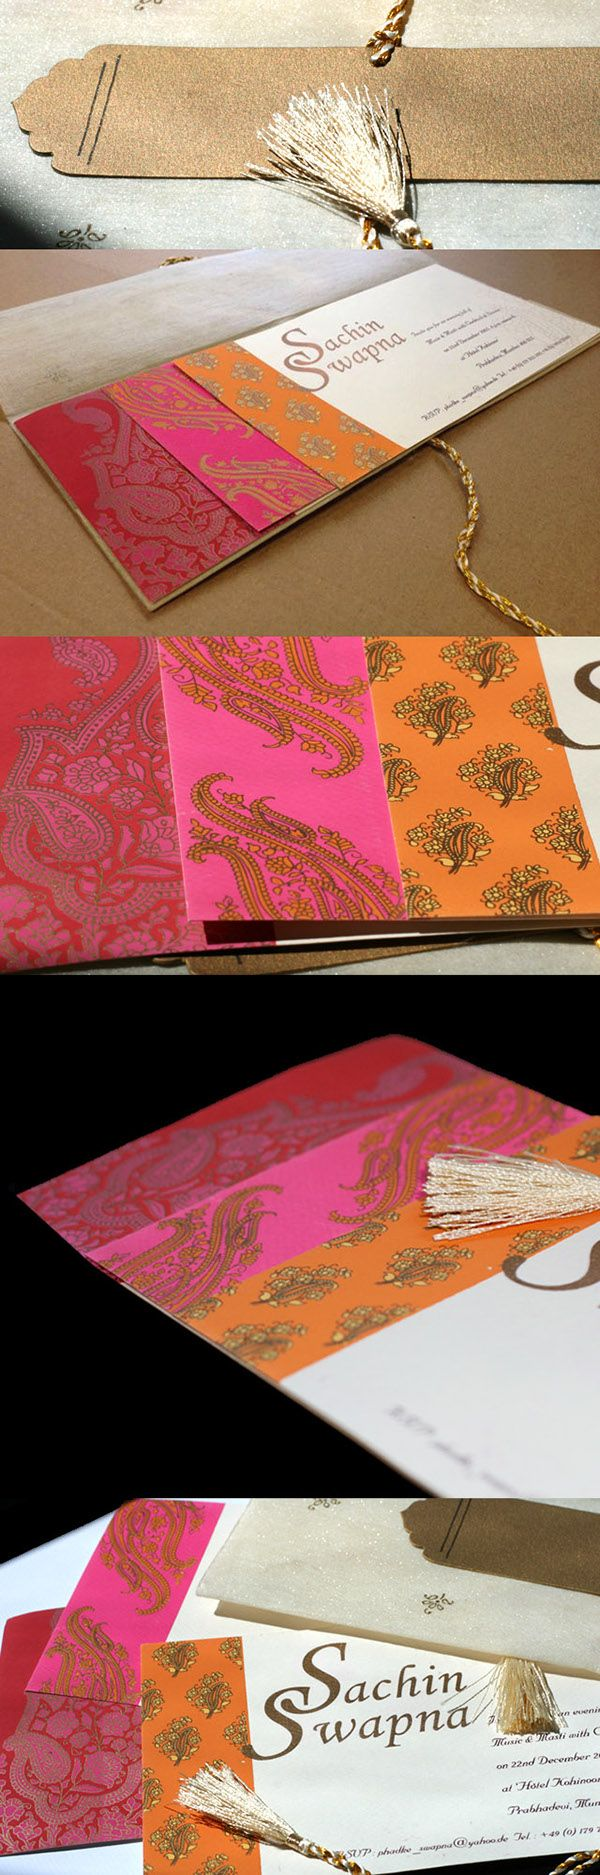 indian wedding cards indian wedding invitations An Indian invite inspired from the beautiful indian sarees Intricate screen printing on textured